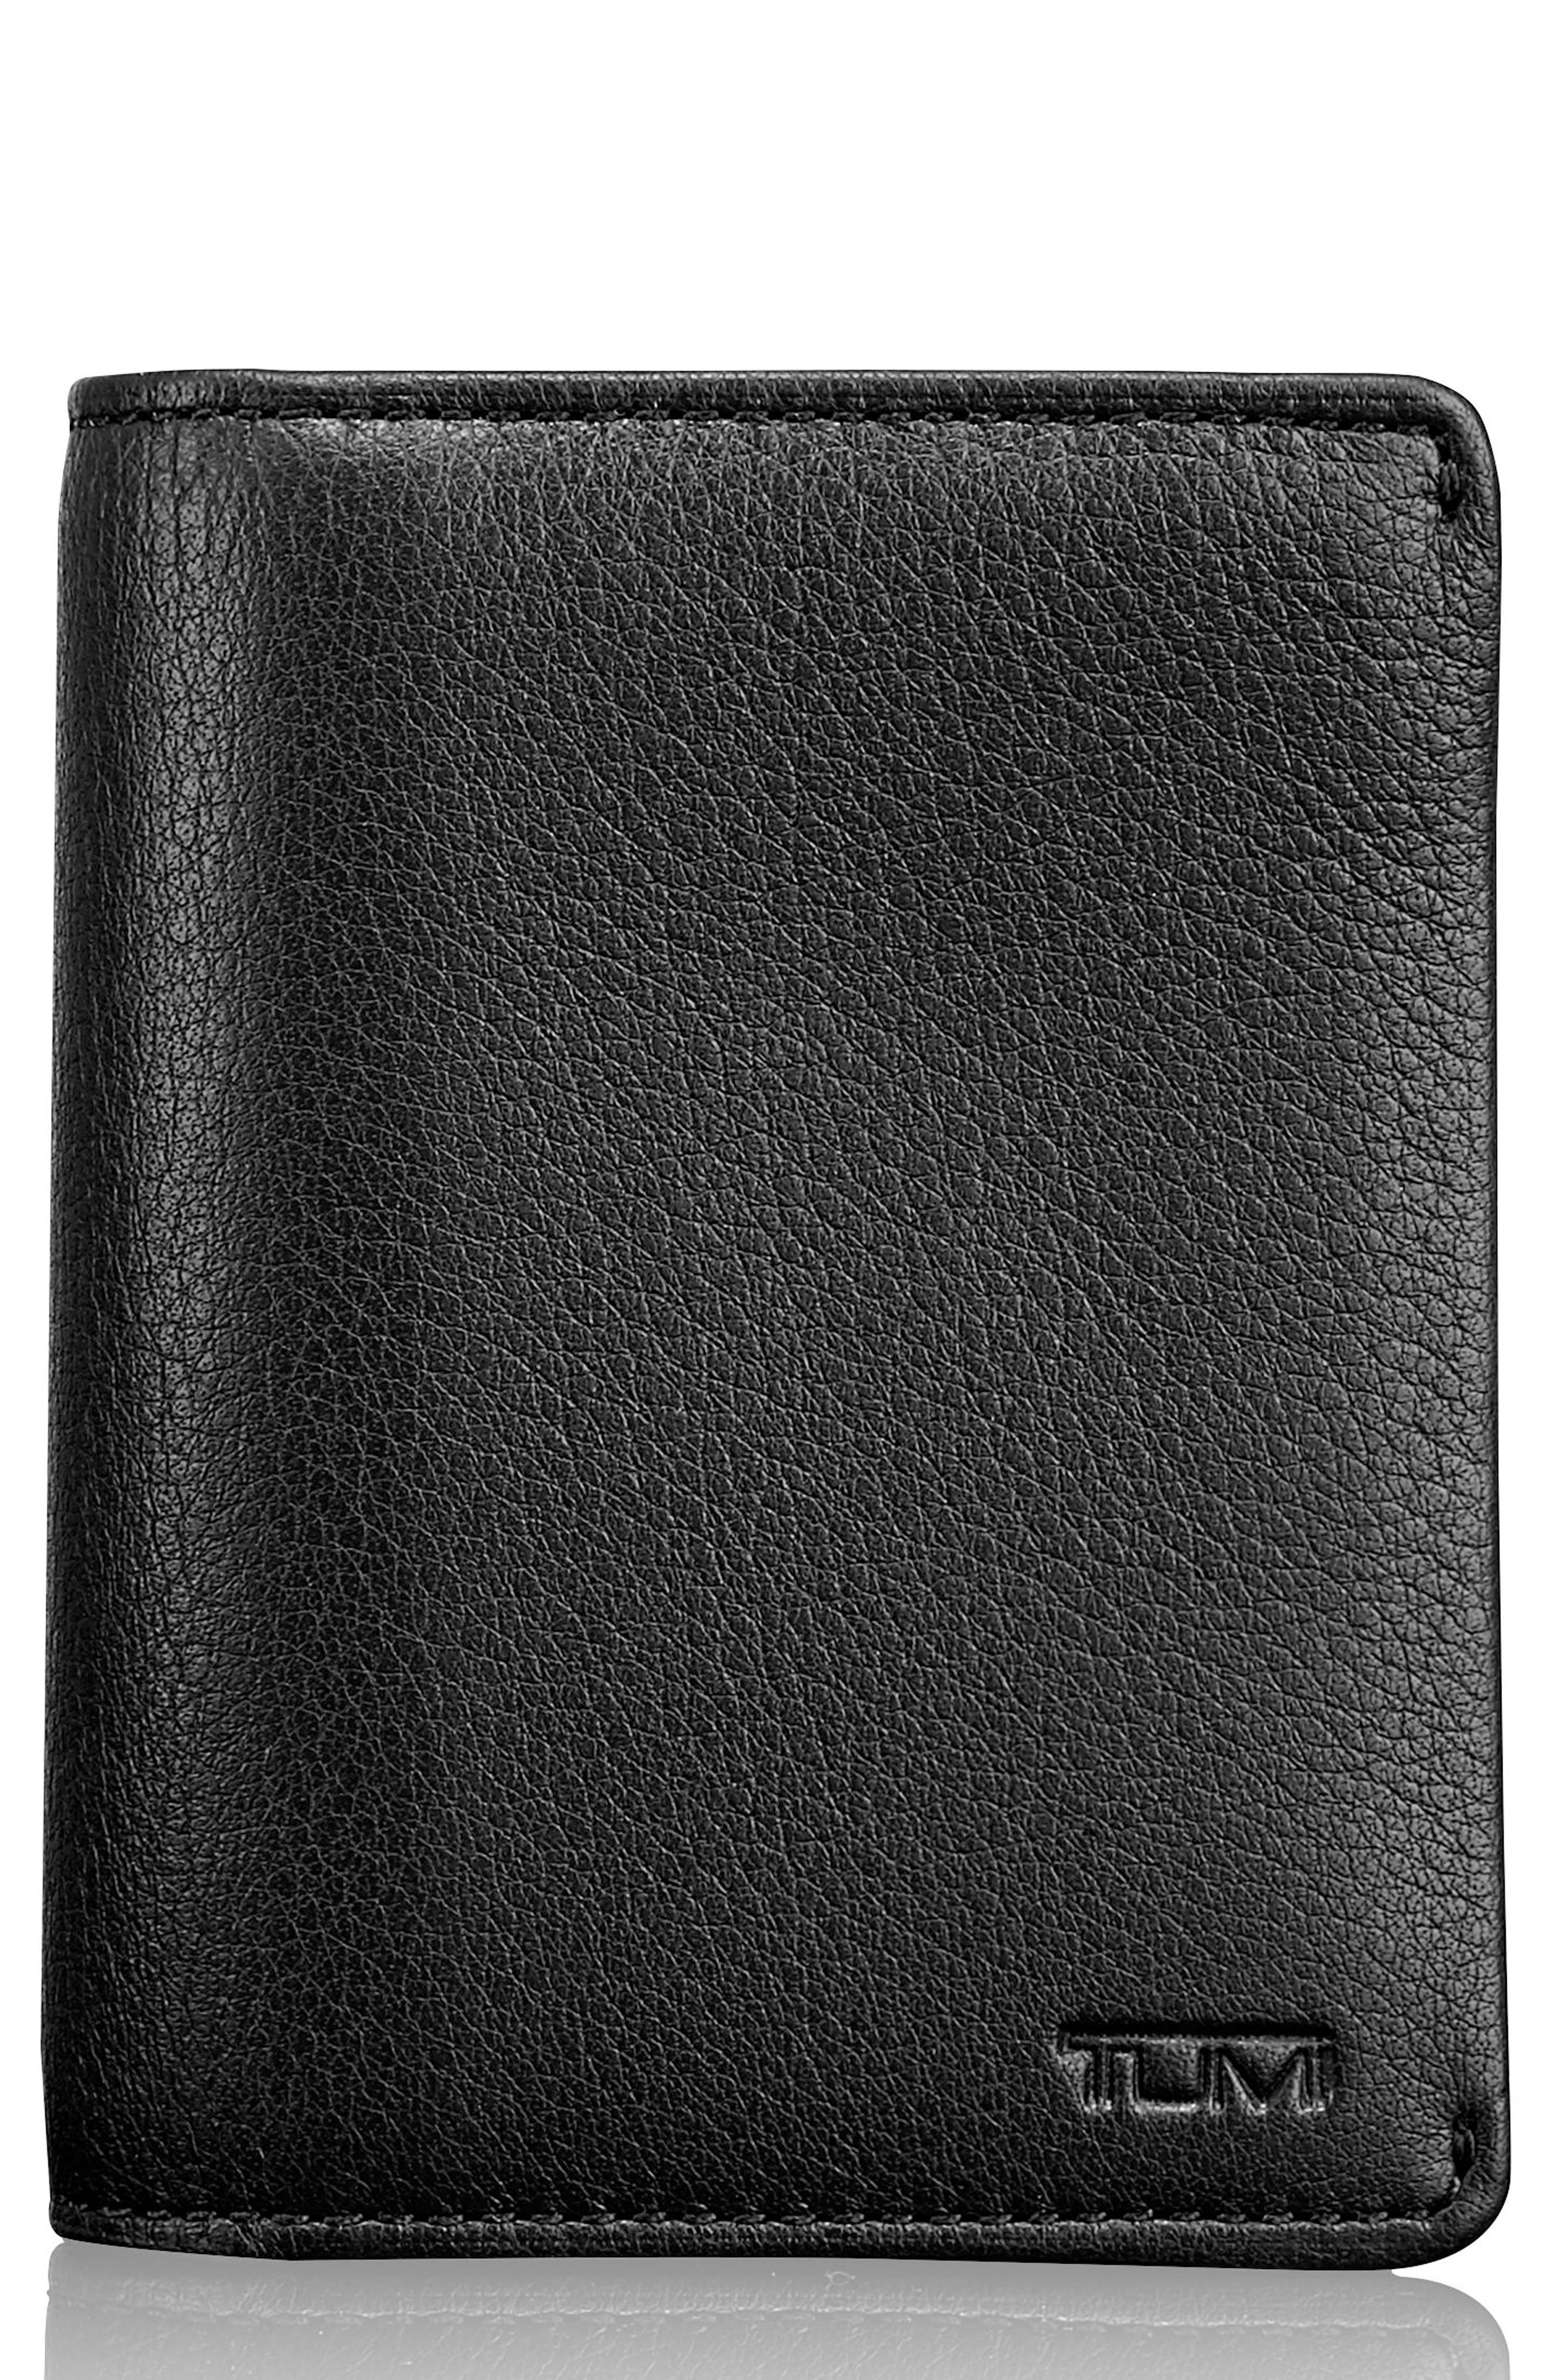 Leather RFID Card Case,                         Main,                         color, Black Textured